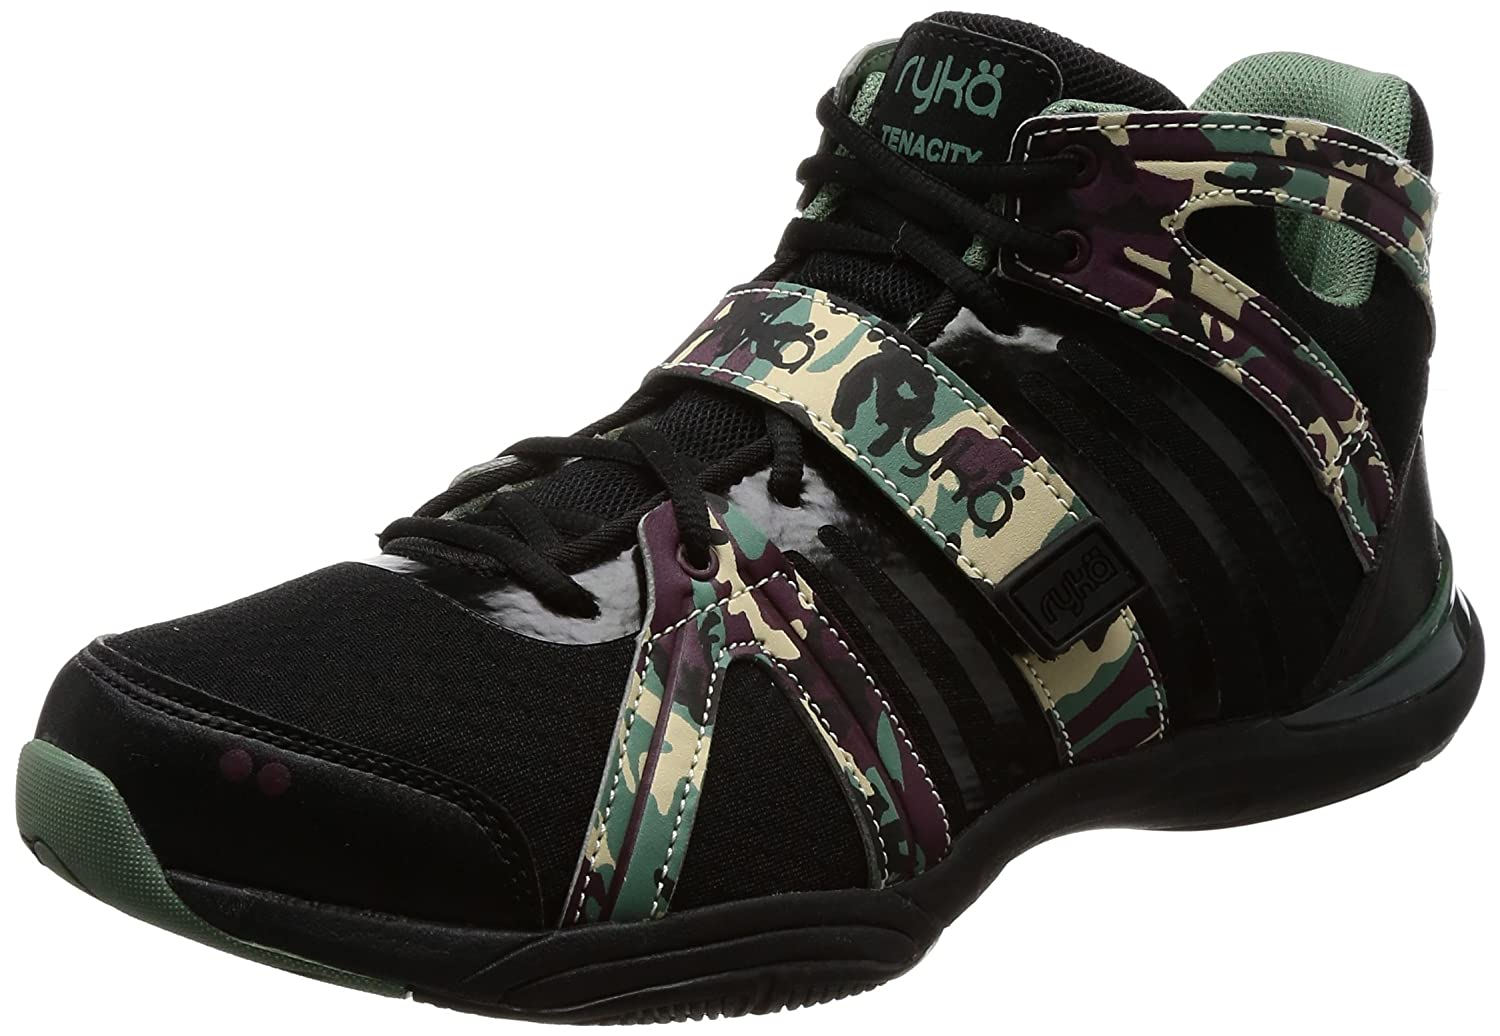 Ryka Women's Tenacity Cross-Trainer Shoe B06XHS1JCL 8 B(M) US|Black/Print